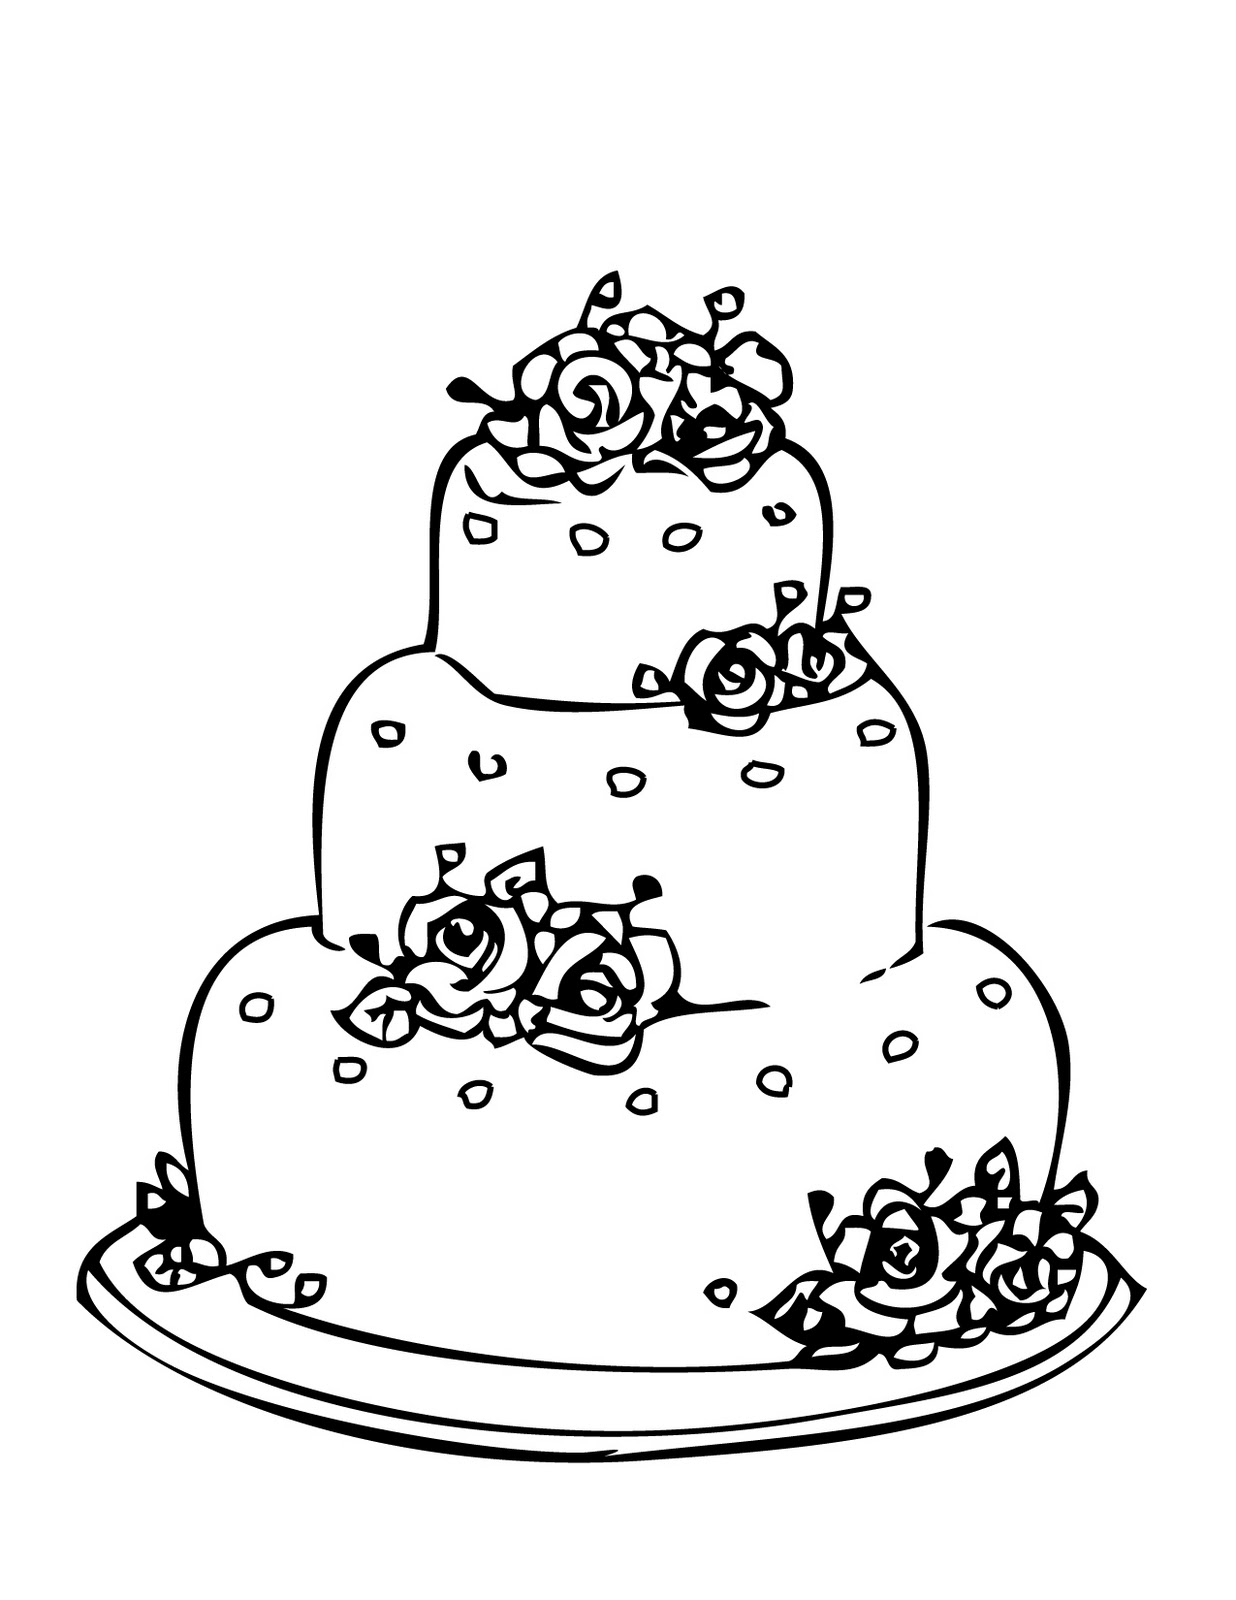 1236x1600 Cake Drawing For Kids Cake Coloring Page For Kids Wallpaper